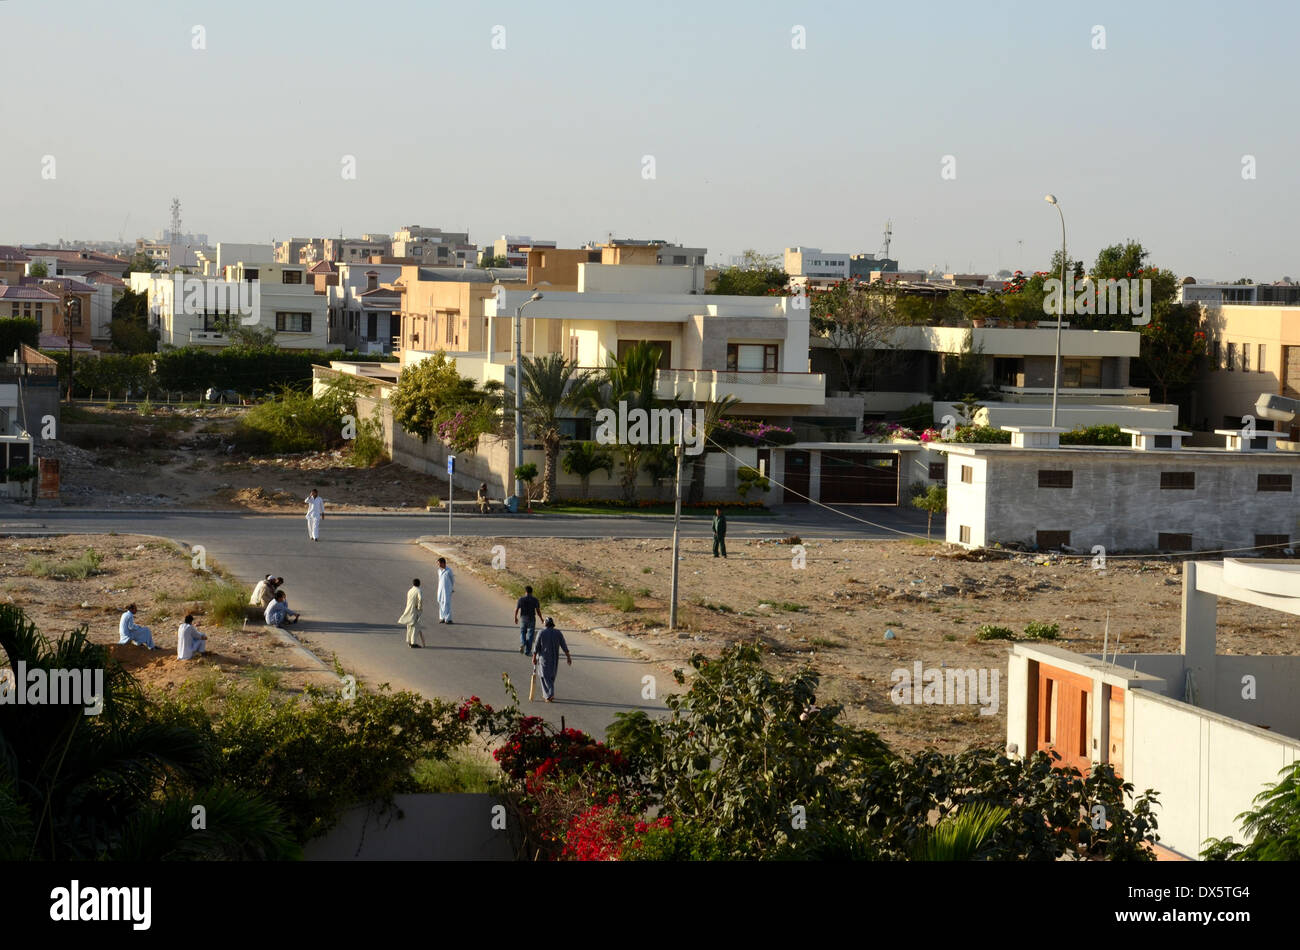 Pakistani Men In Traditional Salwar Kameez Play Street Cricket In Karachi Dha Suburb Pakistan